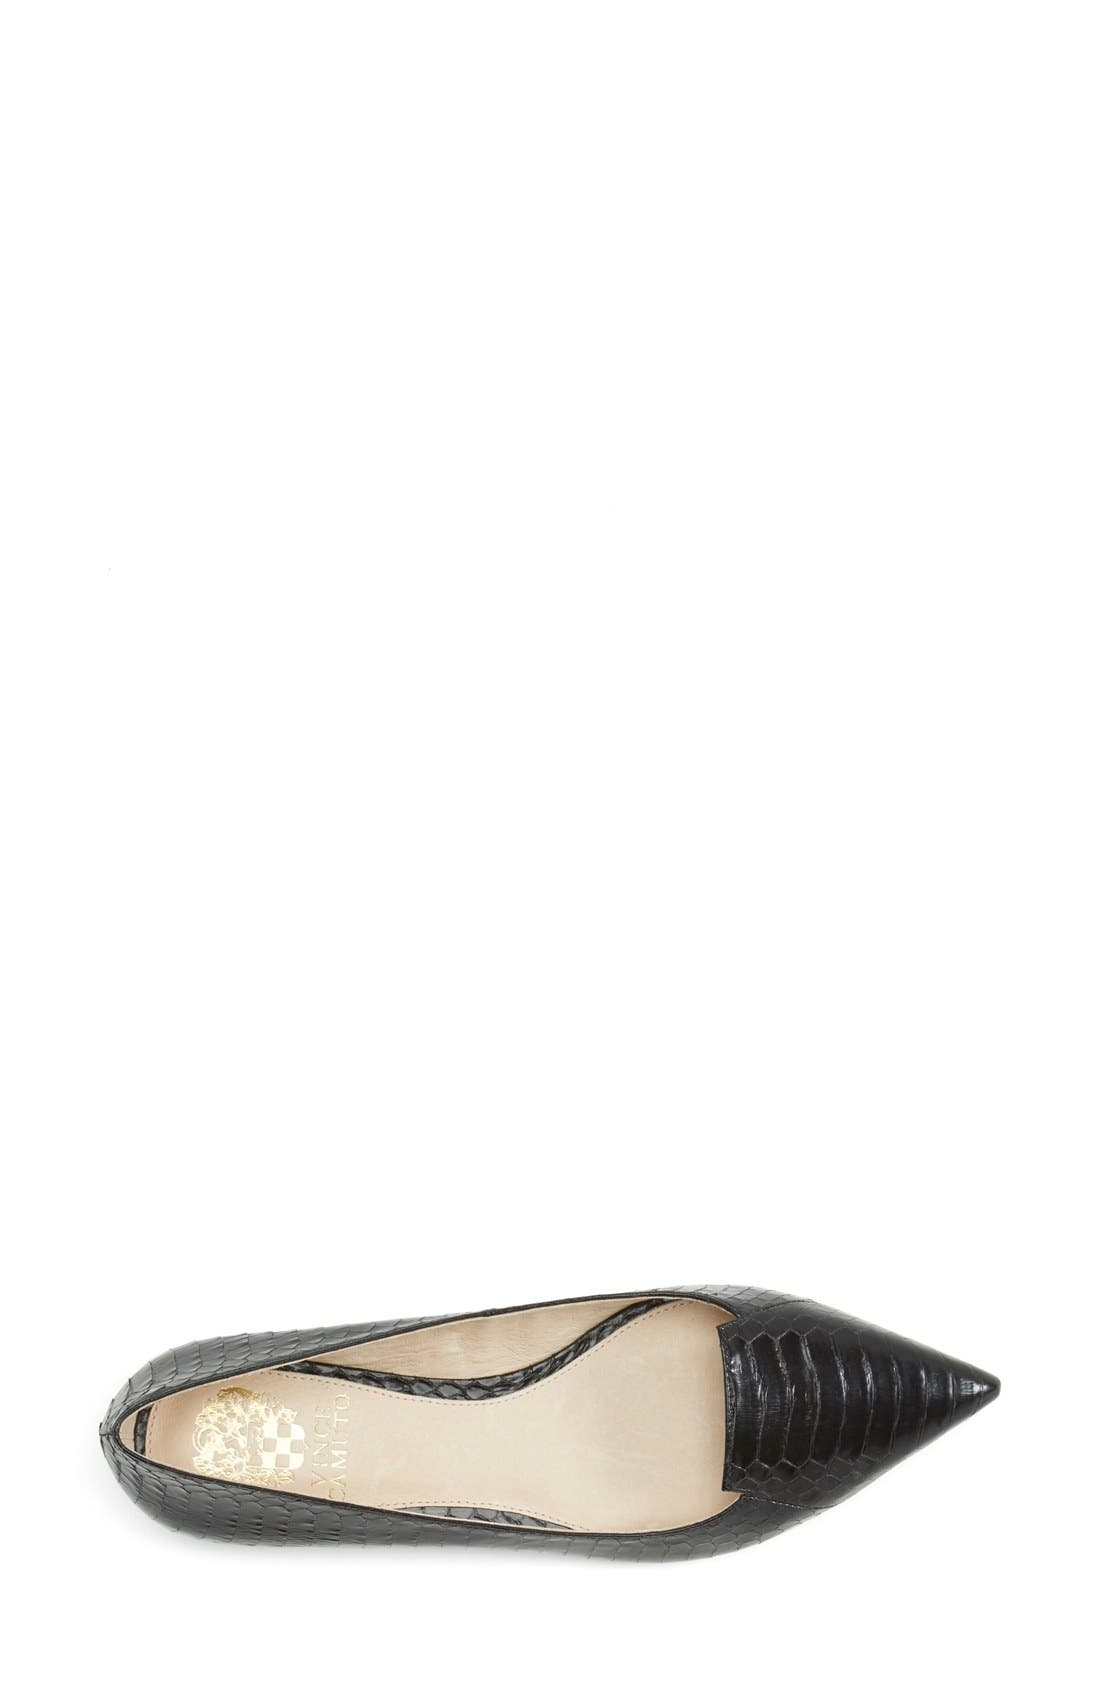 Alternate Image 3  - Vince Camuto 'Empa' Pointy Toe Loafer Flat (Women) (Nordstrom Exclusive)